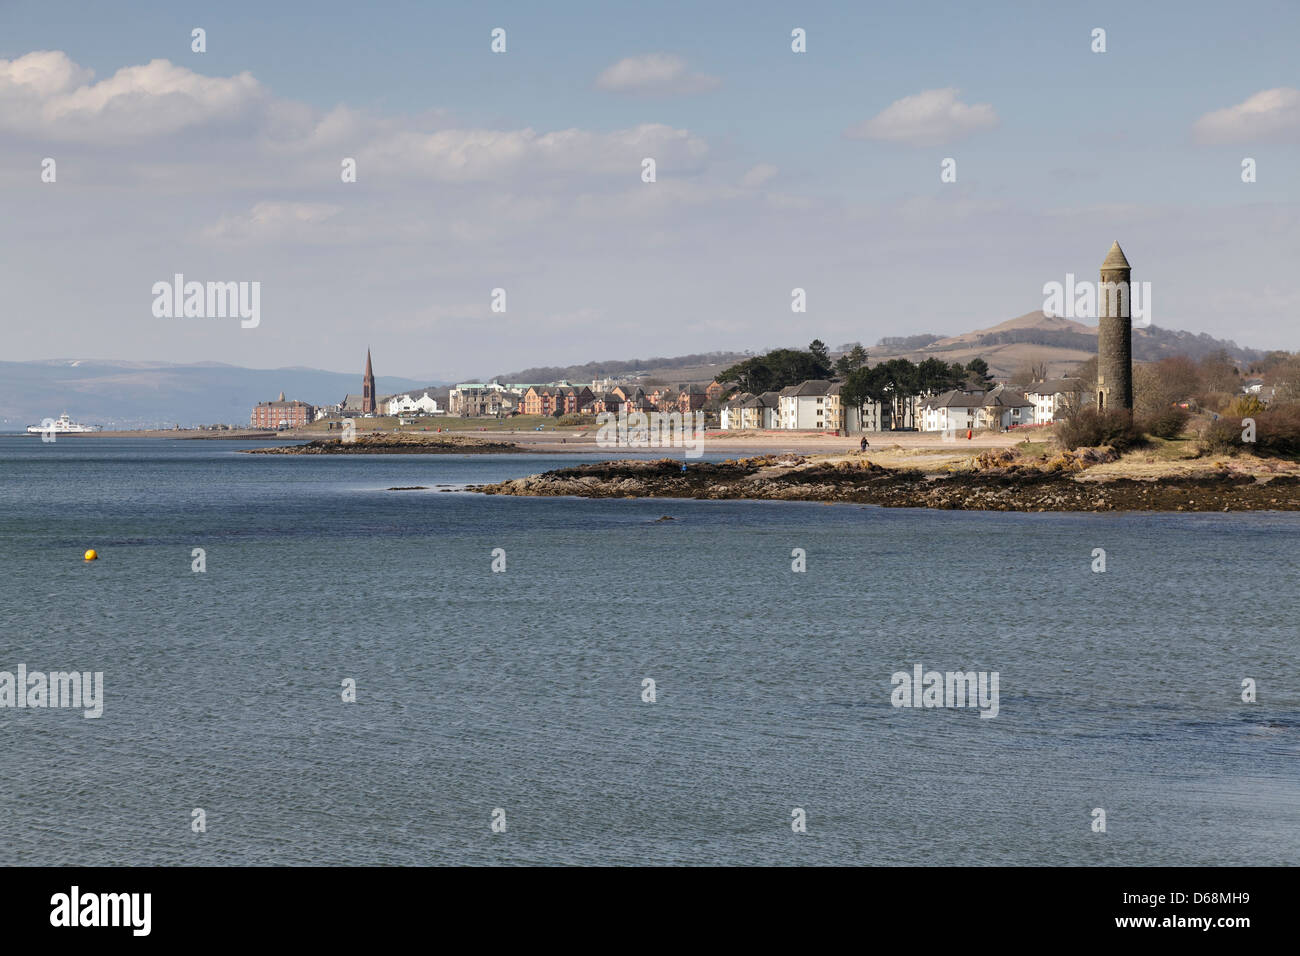 View North to the seaside town of Largs on the Firth of Clyde in Ayshire, Scotland, UK - Stock Image